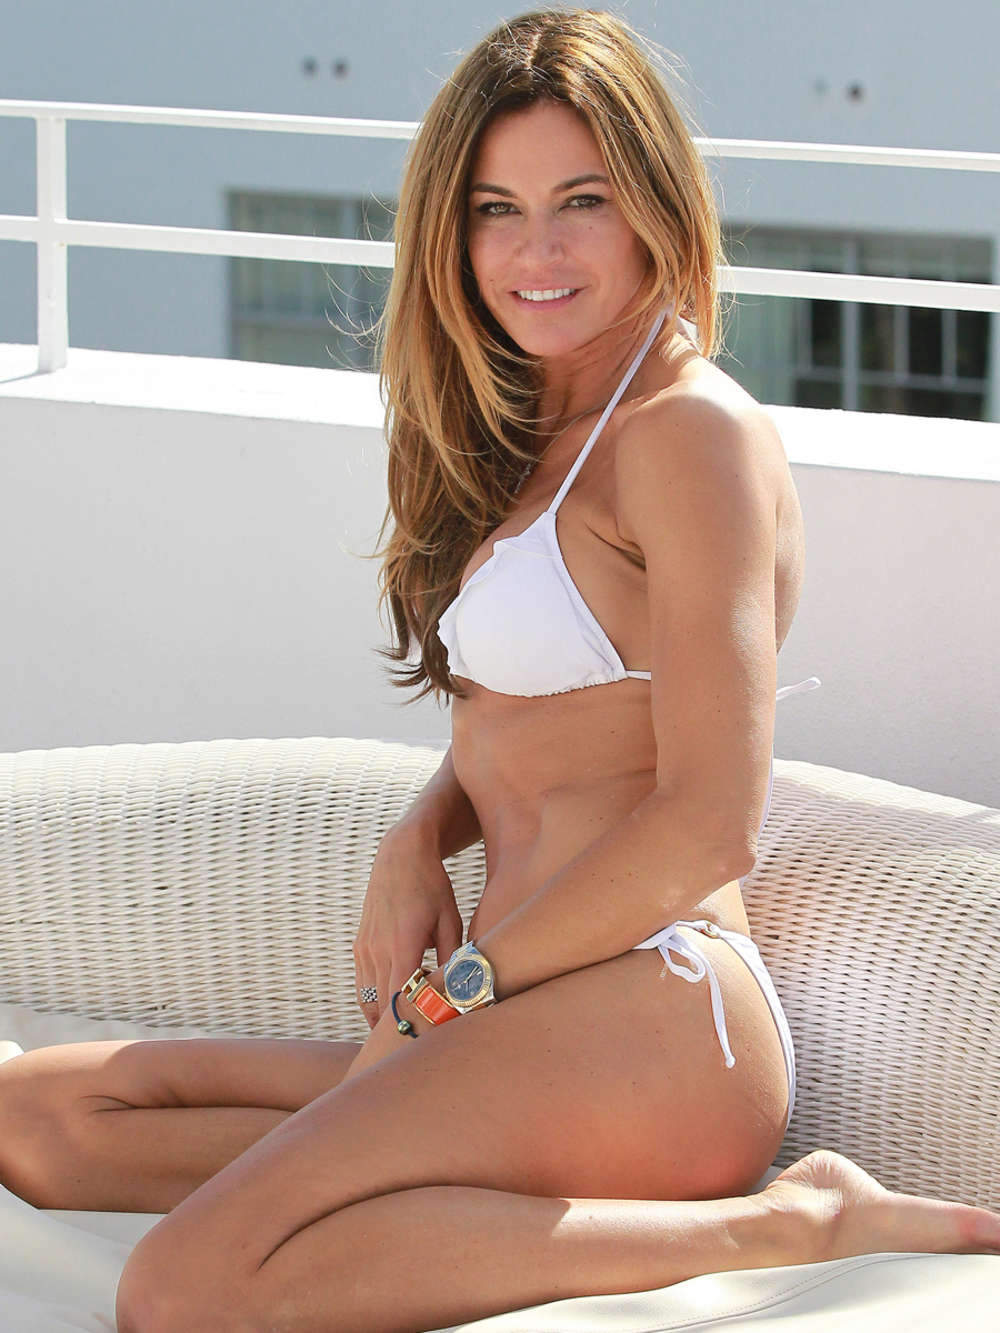 Kelly Bensimon in White Bikini in Miami Pic 5 of 35